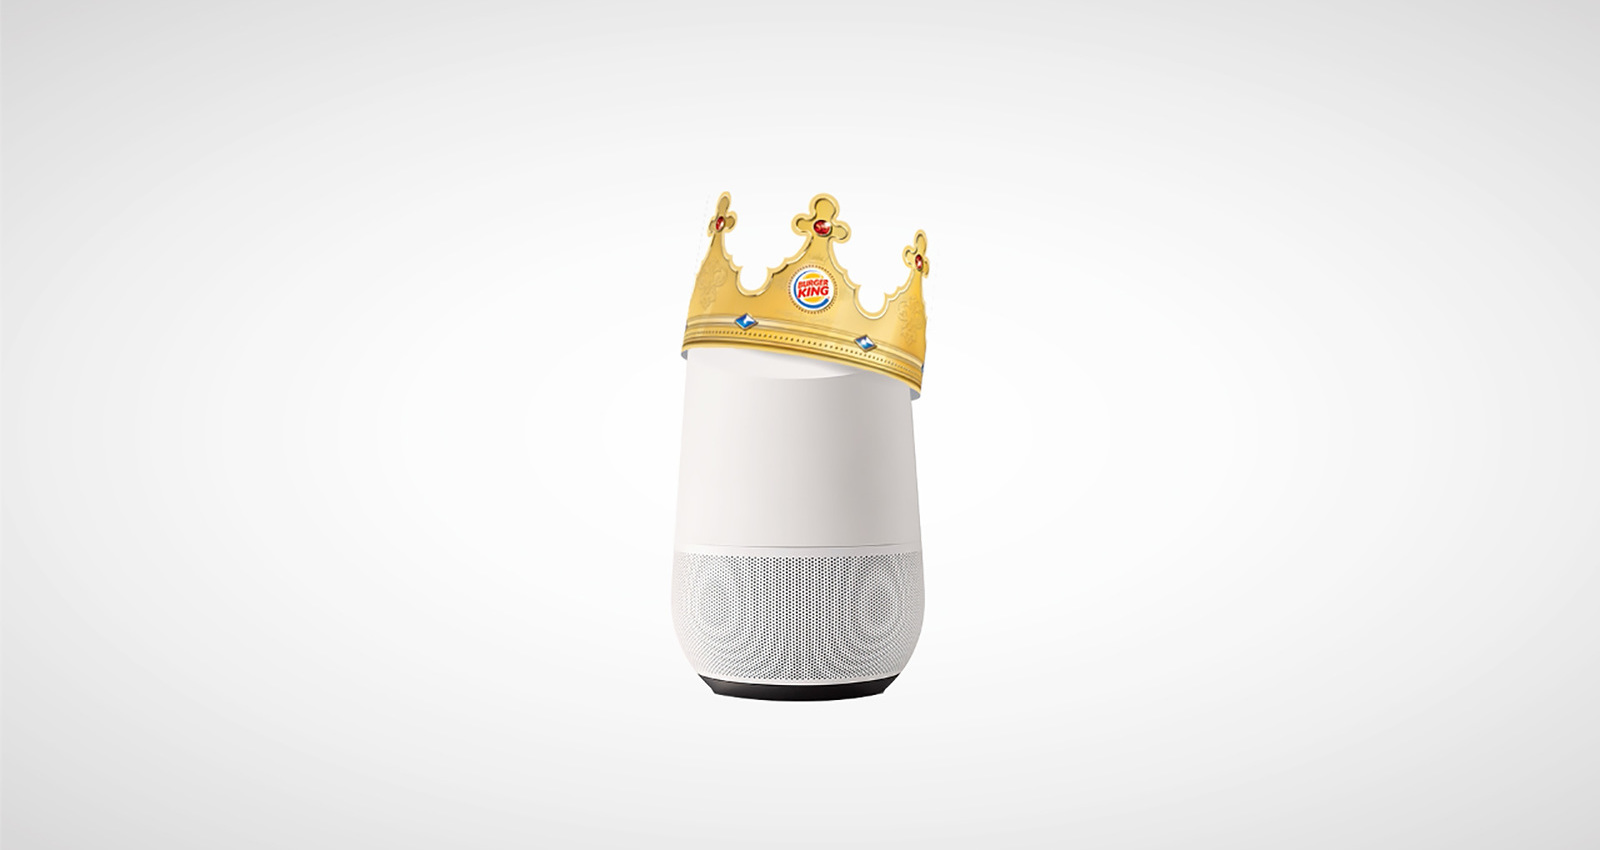 Google Home of The Whopper